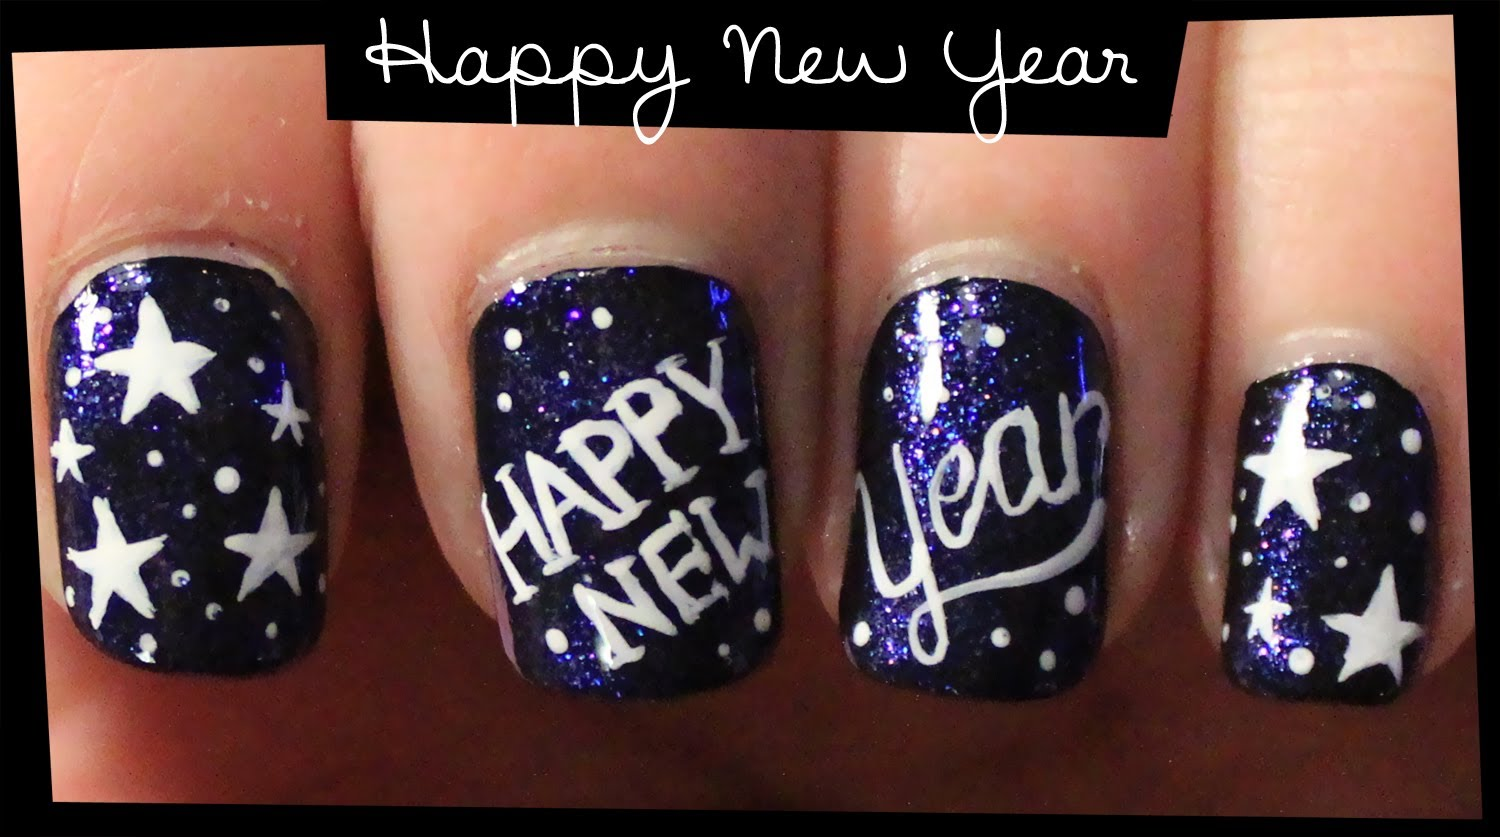 Stunning Nail Art Ideas for New Year\'s Eve